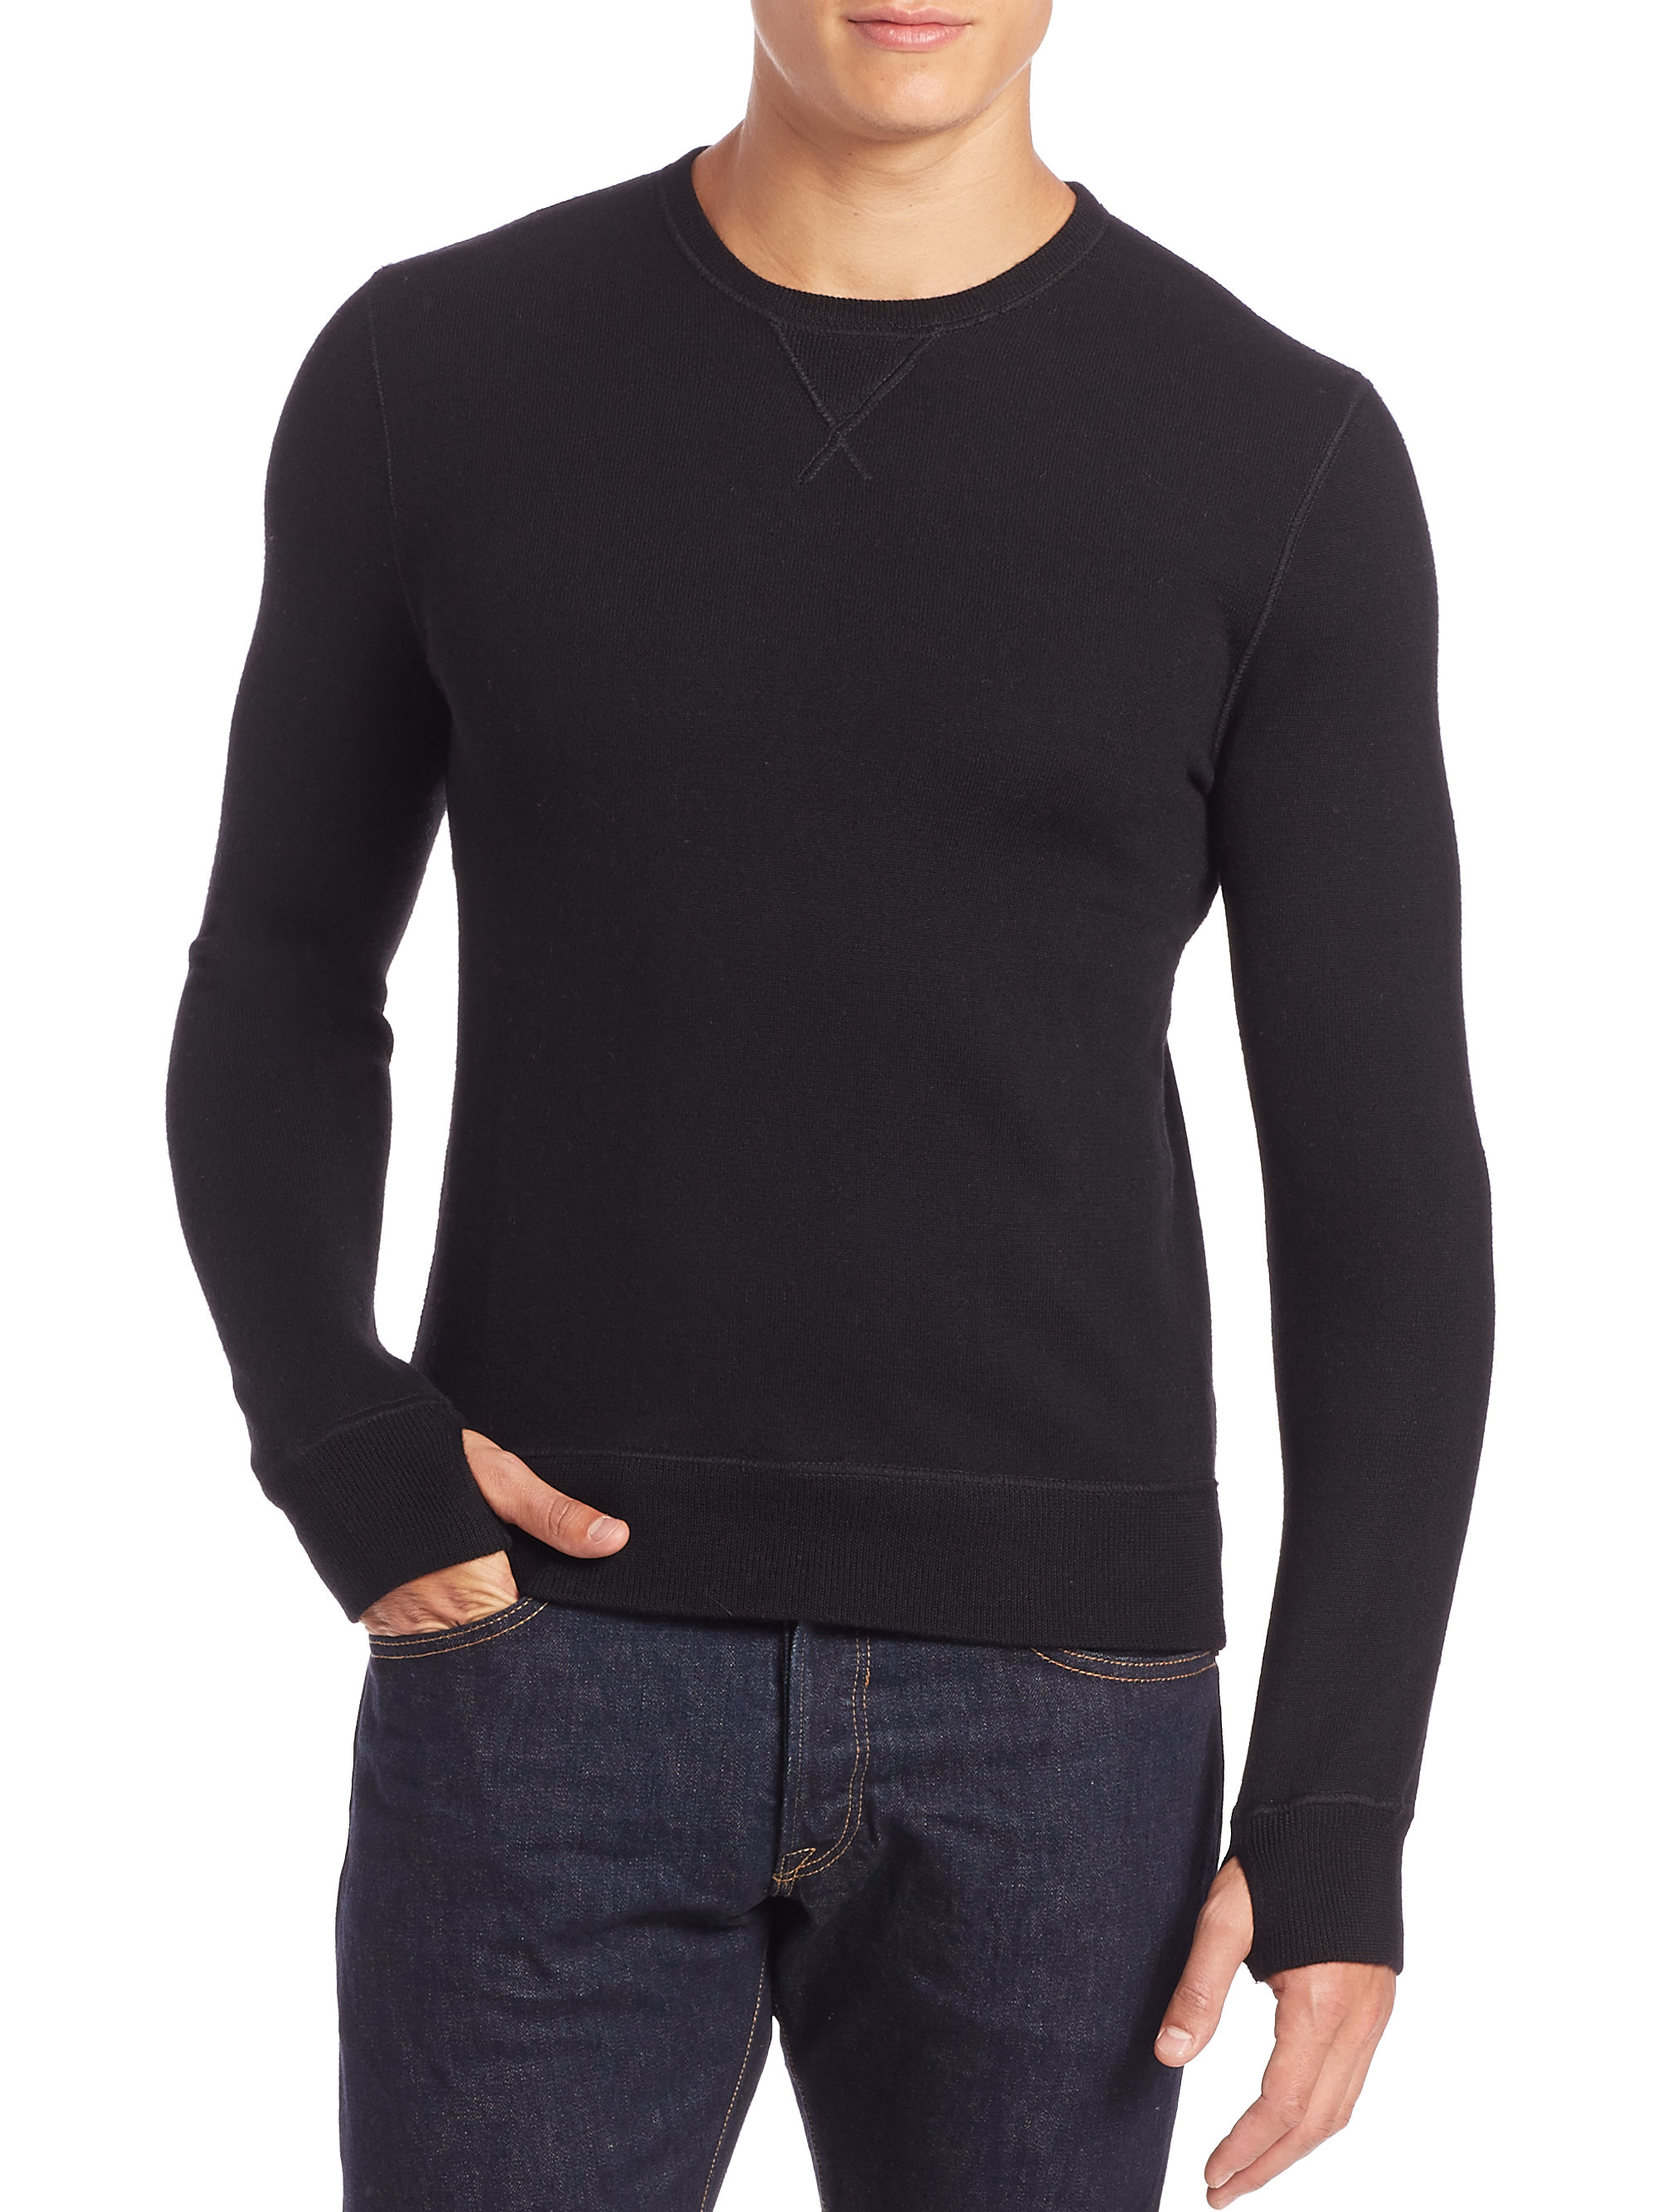 polo ralph lauren merino wool sweatshirt in black for men lyst. Black Bedroom Furniture Sets. Home Design Ideas